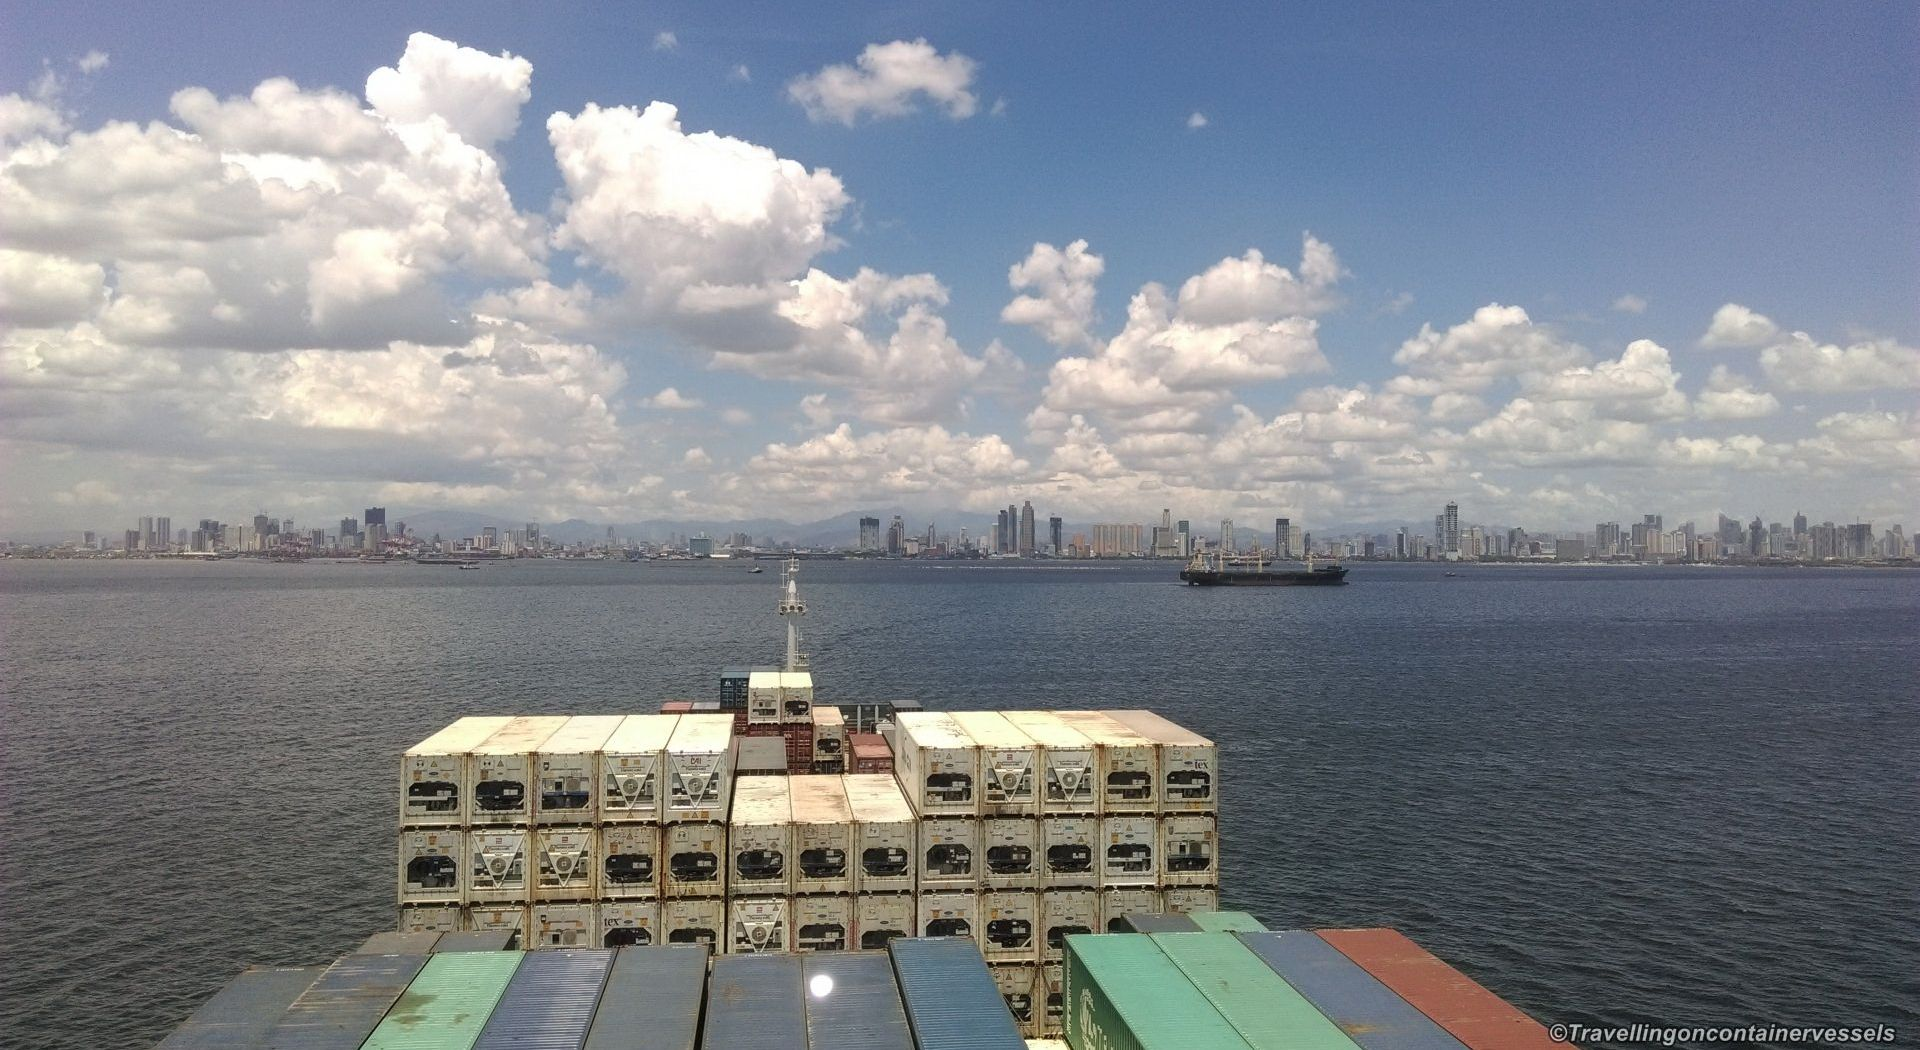 Entering the port of Manila